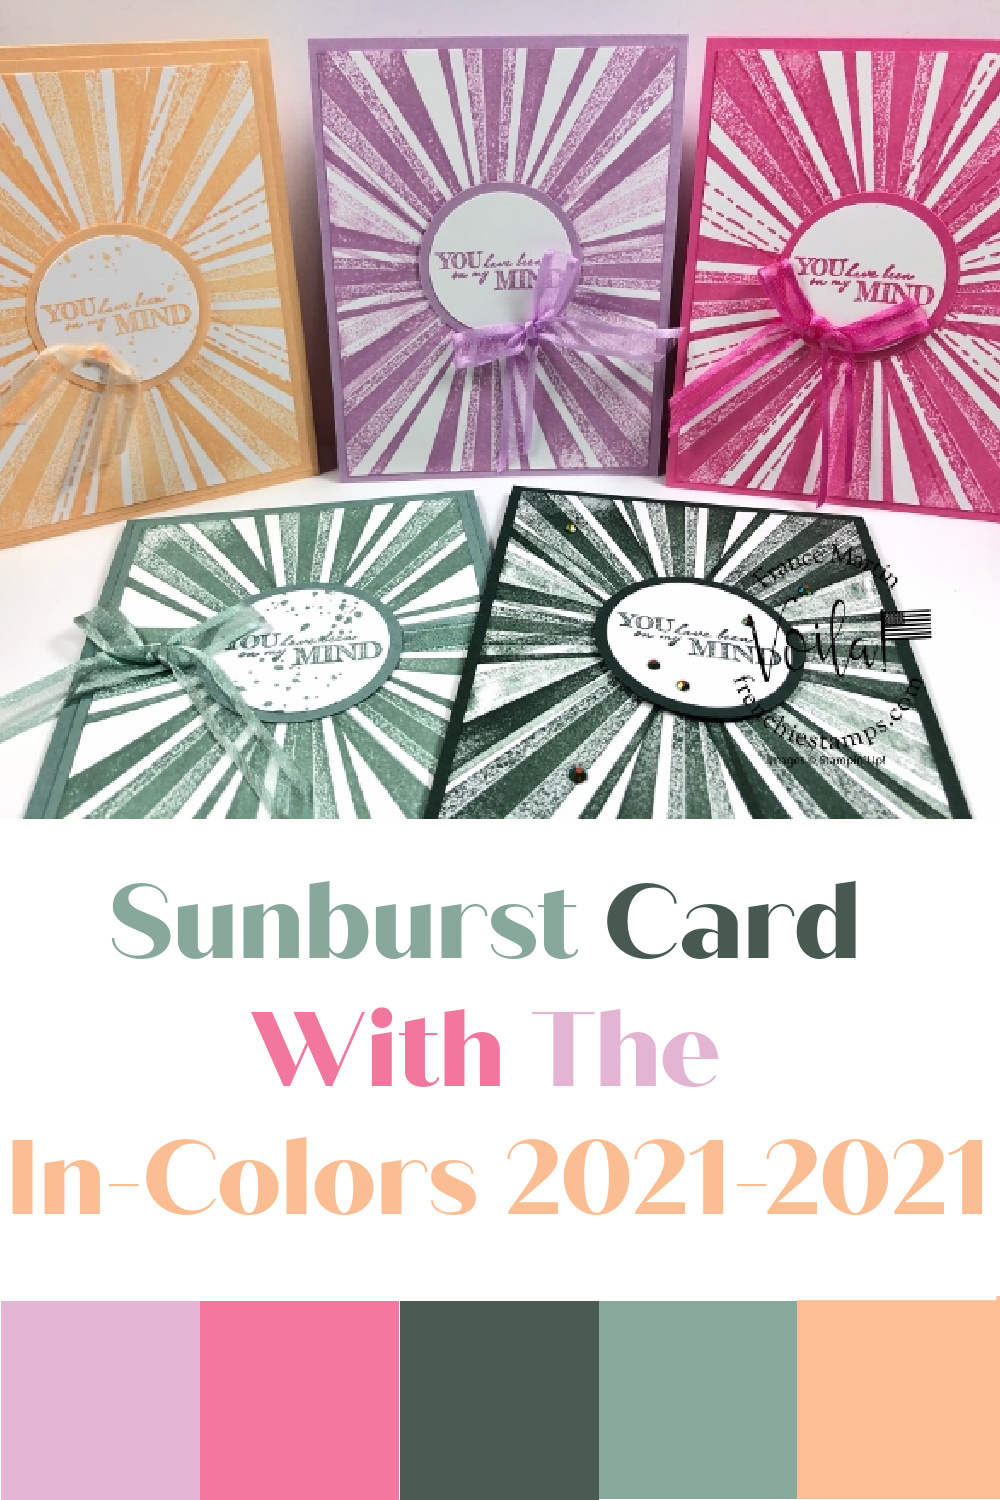 In Colors 2021-2023 Sunburst Card with After The Storm Stamp Set